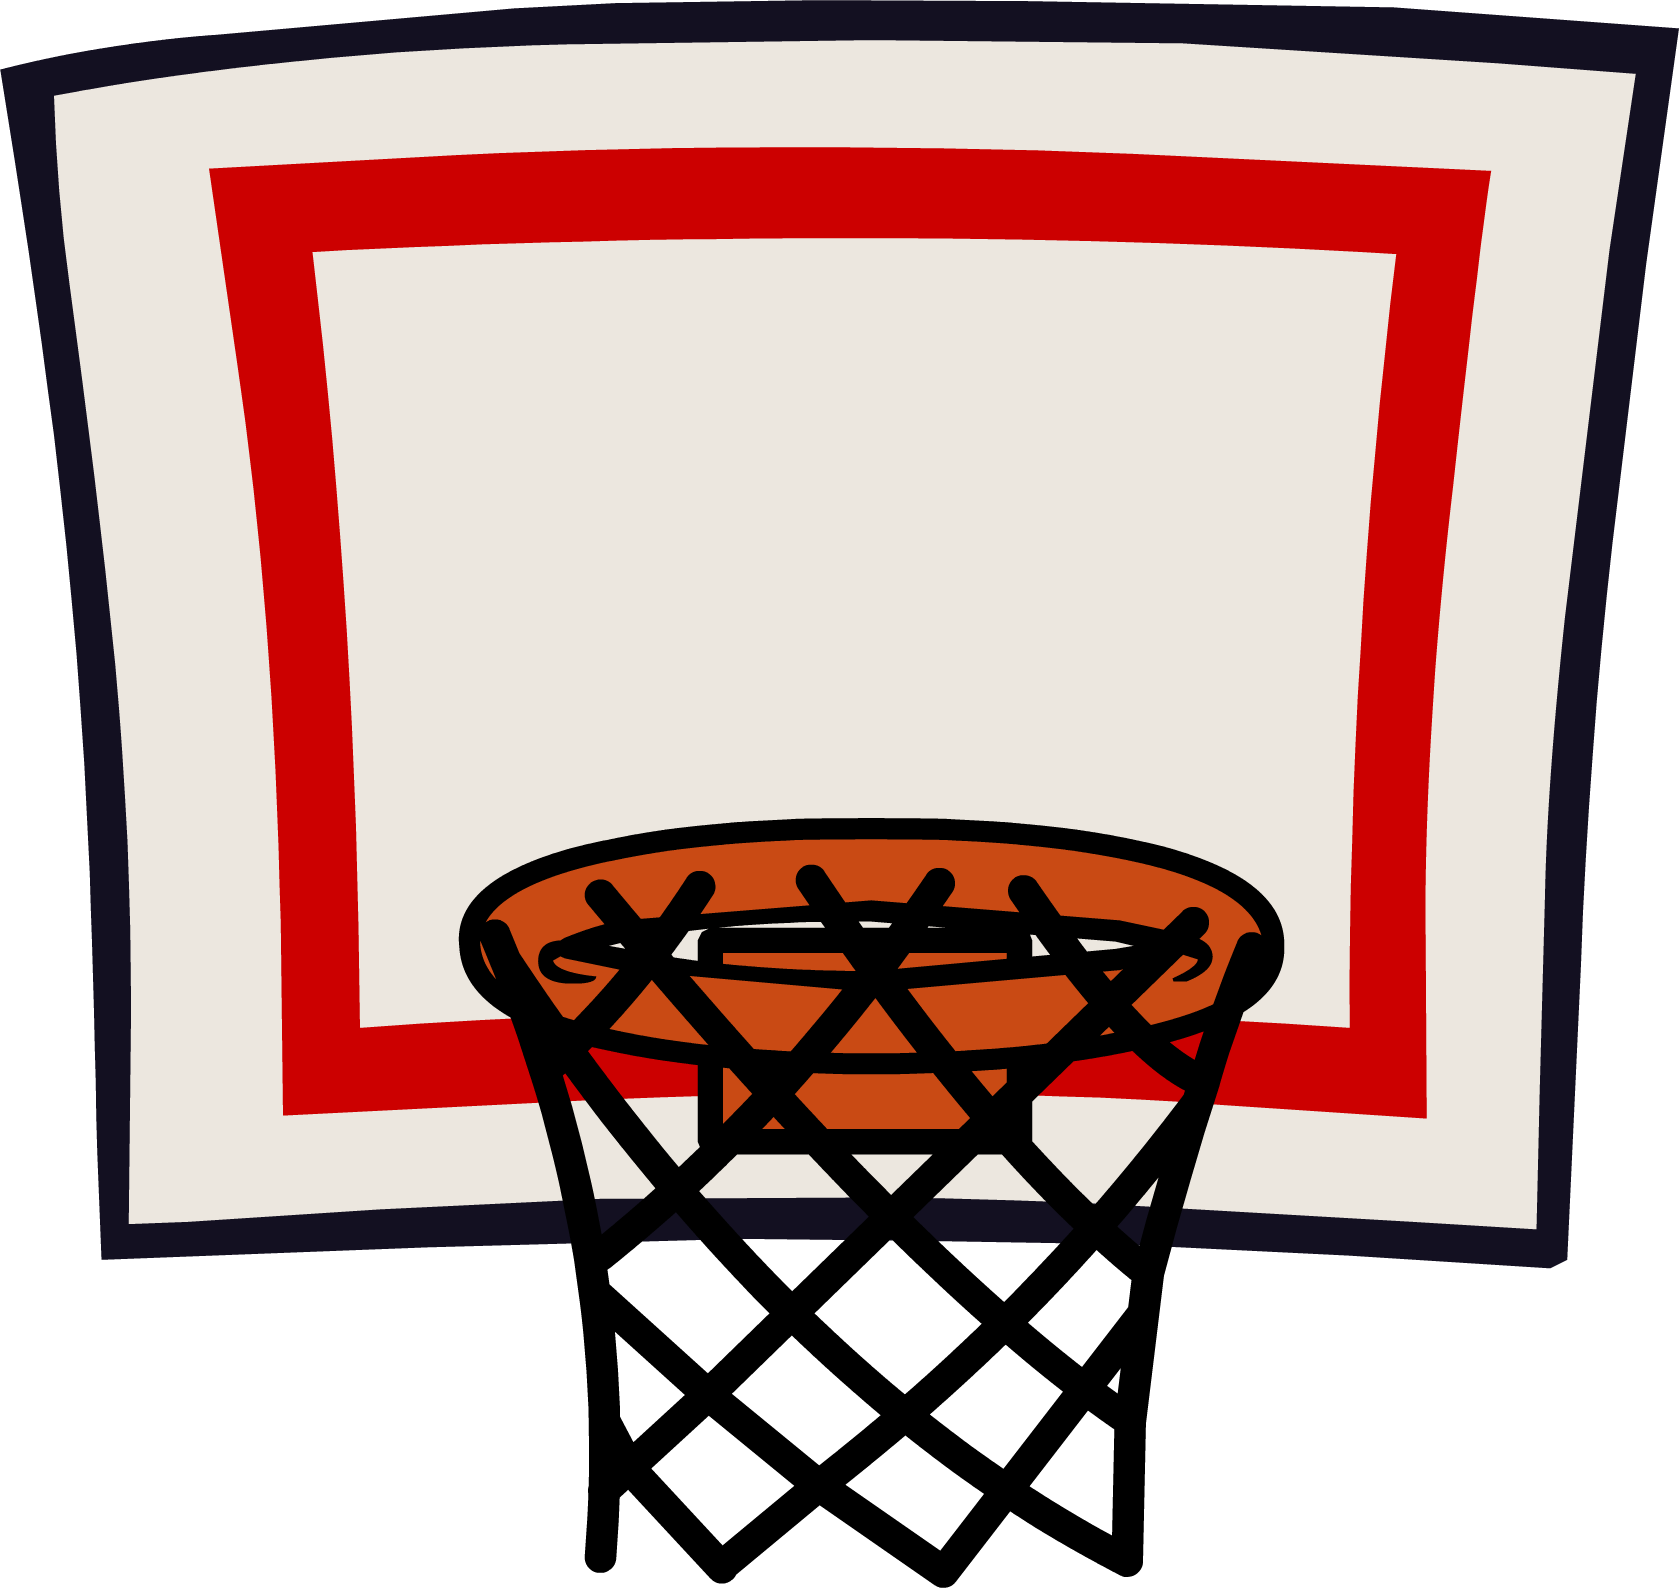 Panther basketball movable clipart graphic Hoop basketball ring net clipart 2 - Clipartix graphic